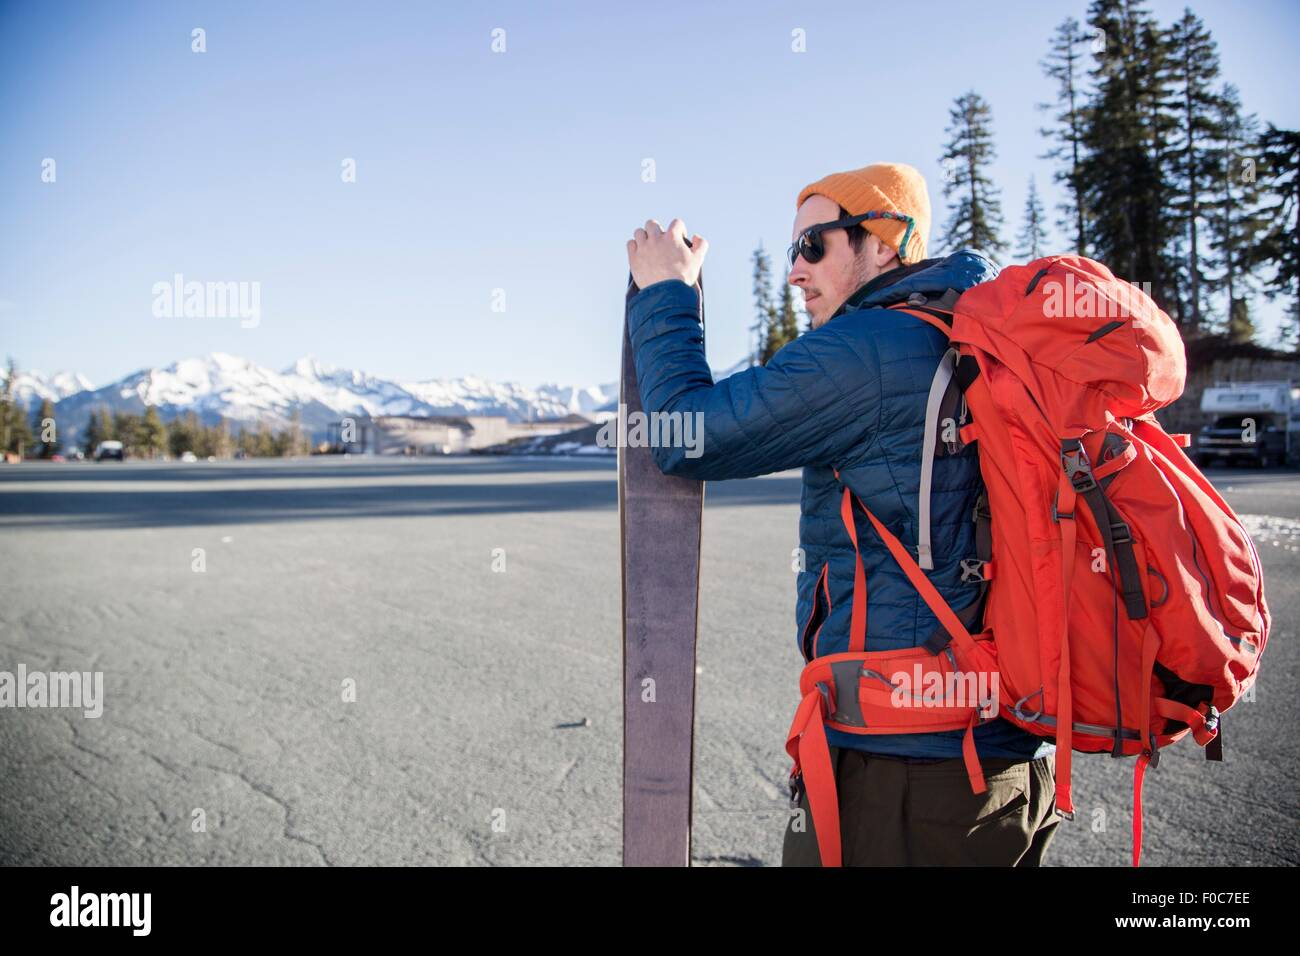 Young male skier in parking lot with distant snow capped Mount Baker, Washington, USA - Stock Image